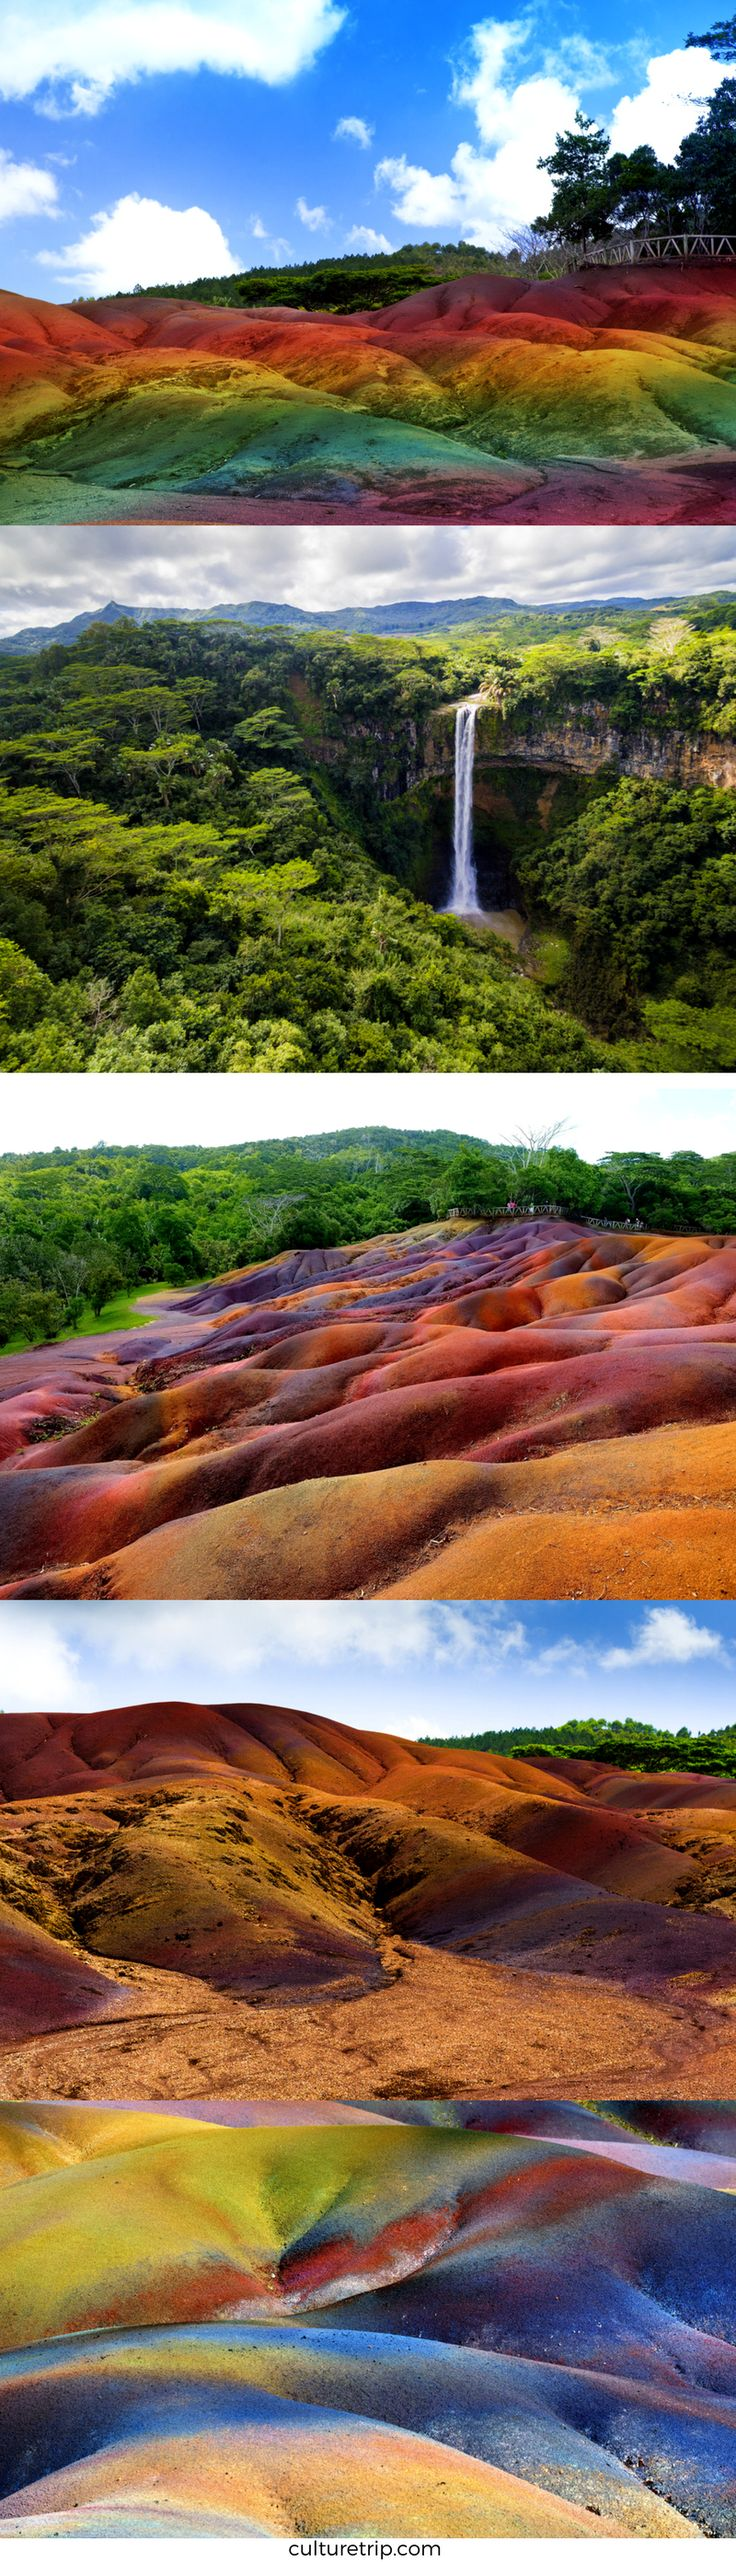 This Amazing Place In Mauritius Called Chamarel. la terre de sept couleurs